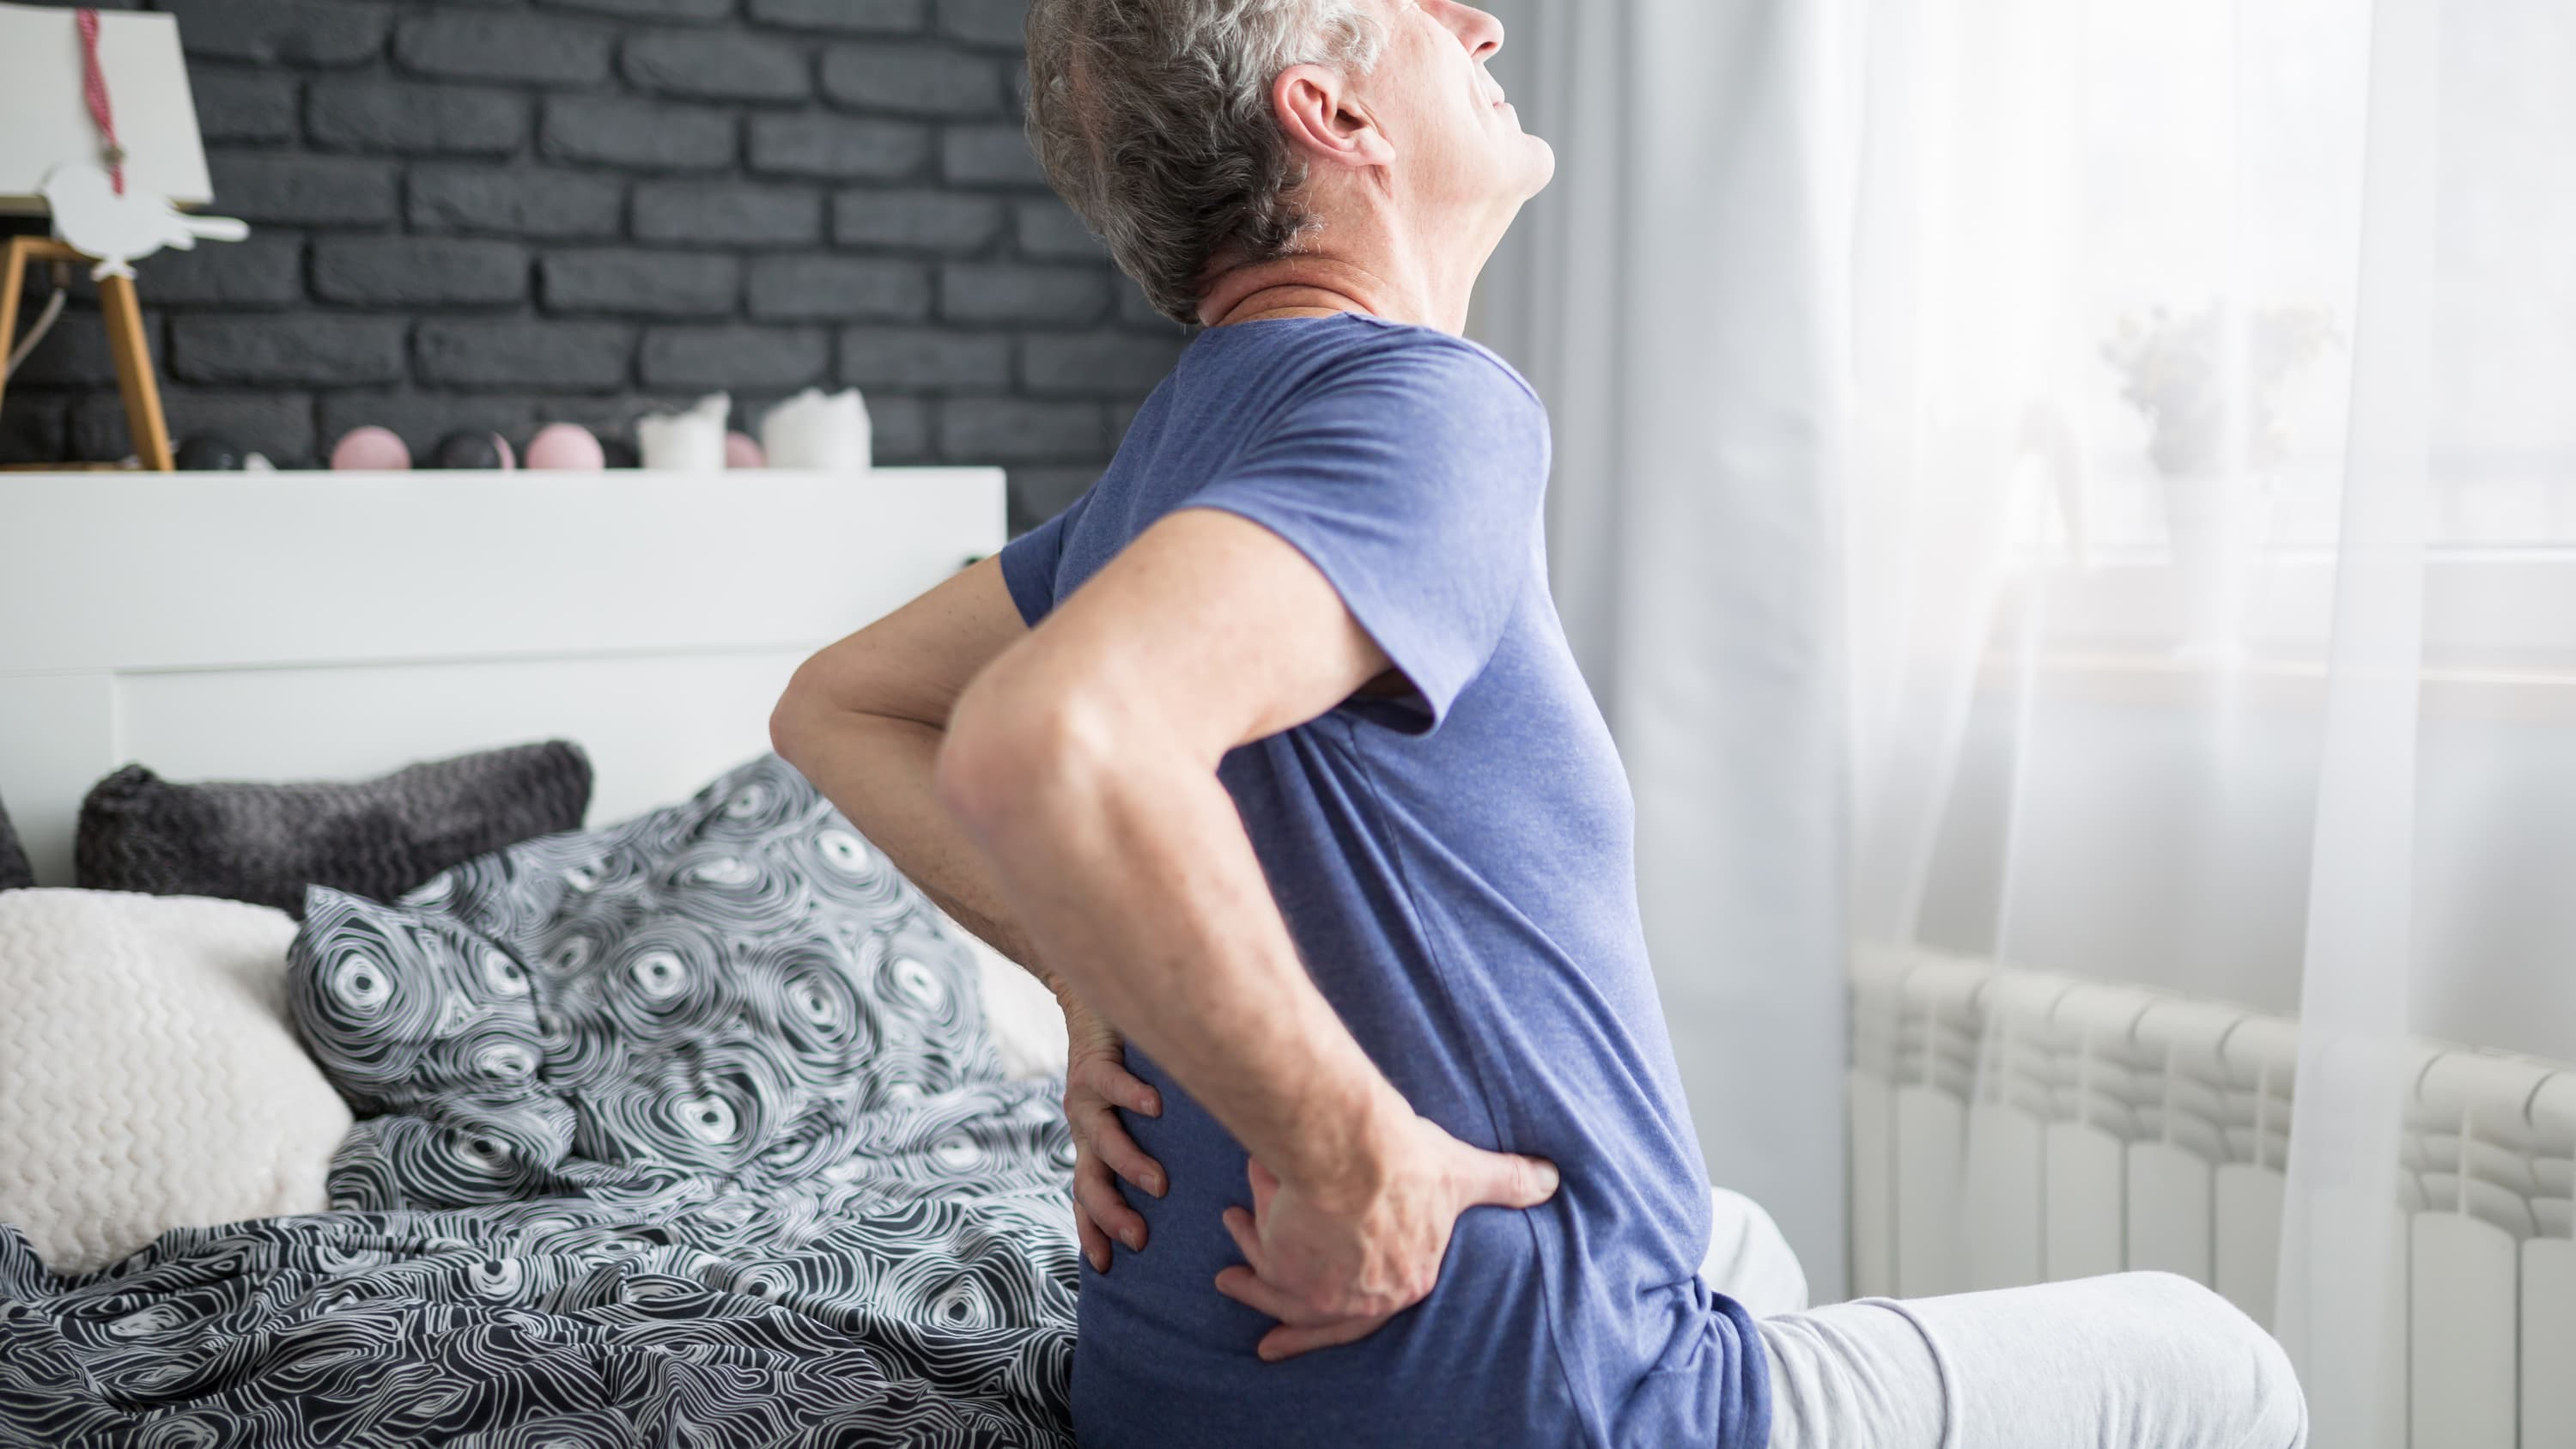 A man suffering from glomerulonephritis grabs his lower back in pain.